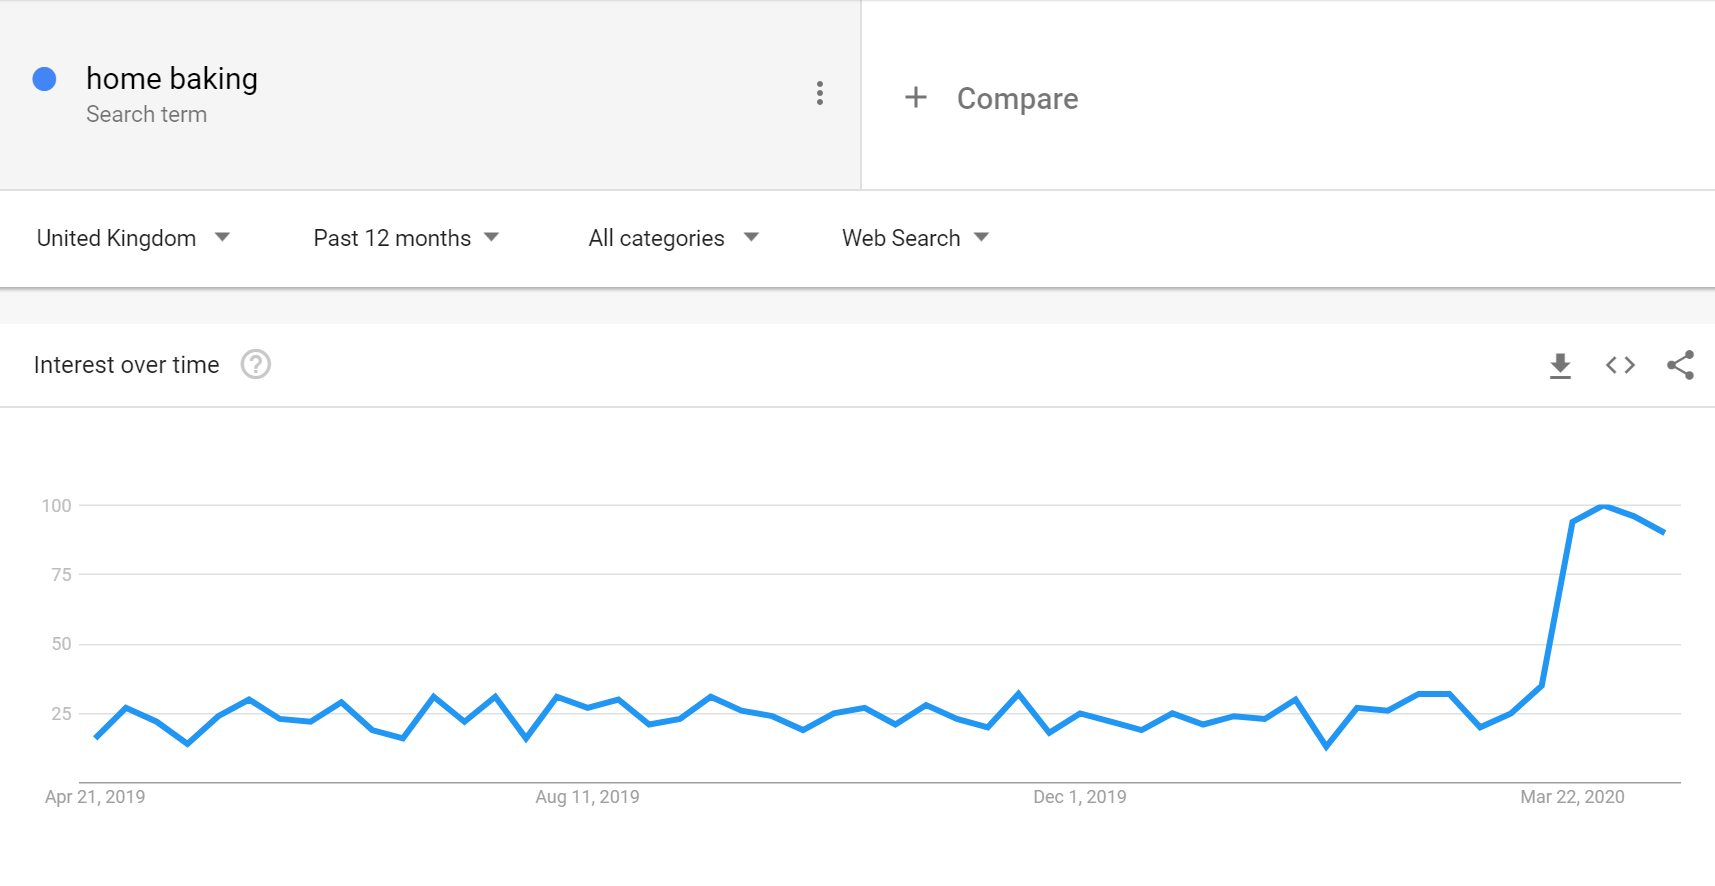 Rise in home baking searches on Google